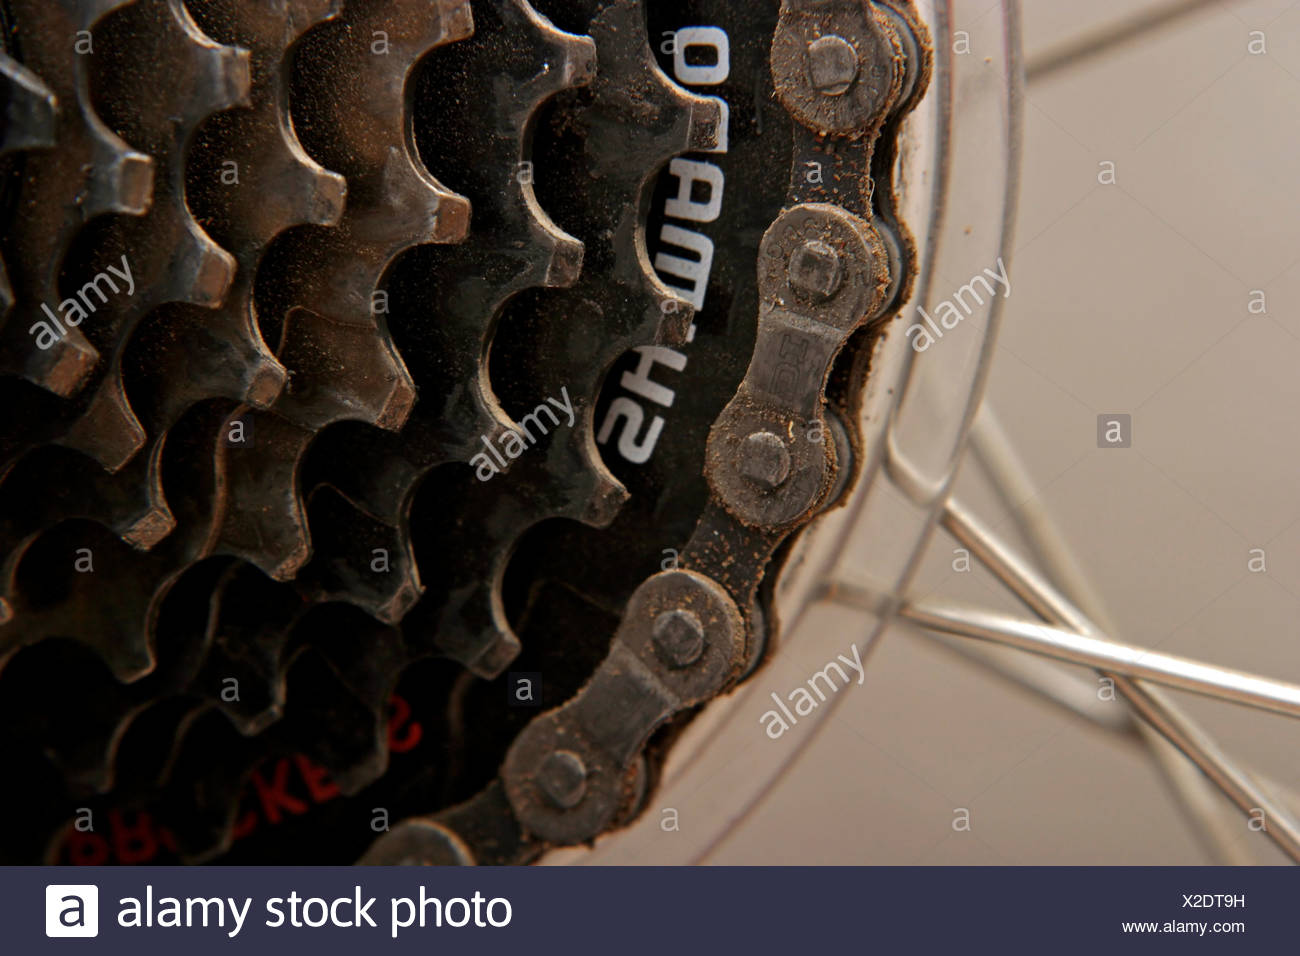 Close Up Of Bicycle Parts The Back Cog Wheel Stock Photo 276899661